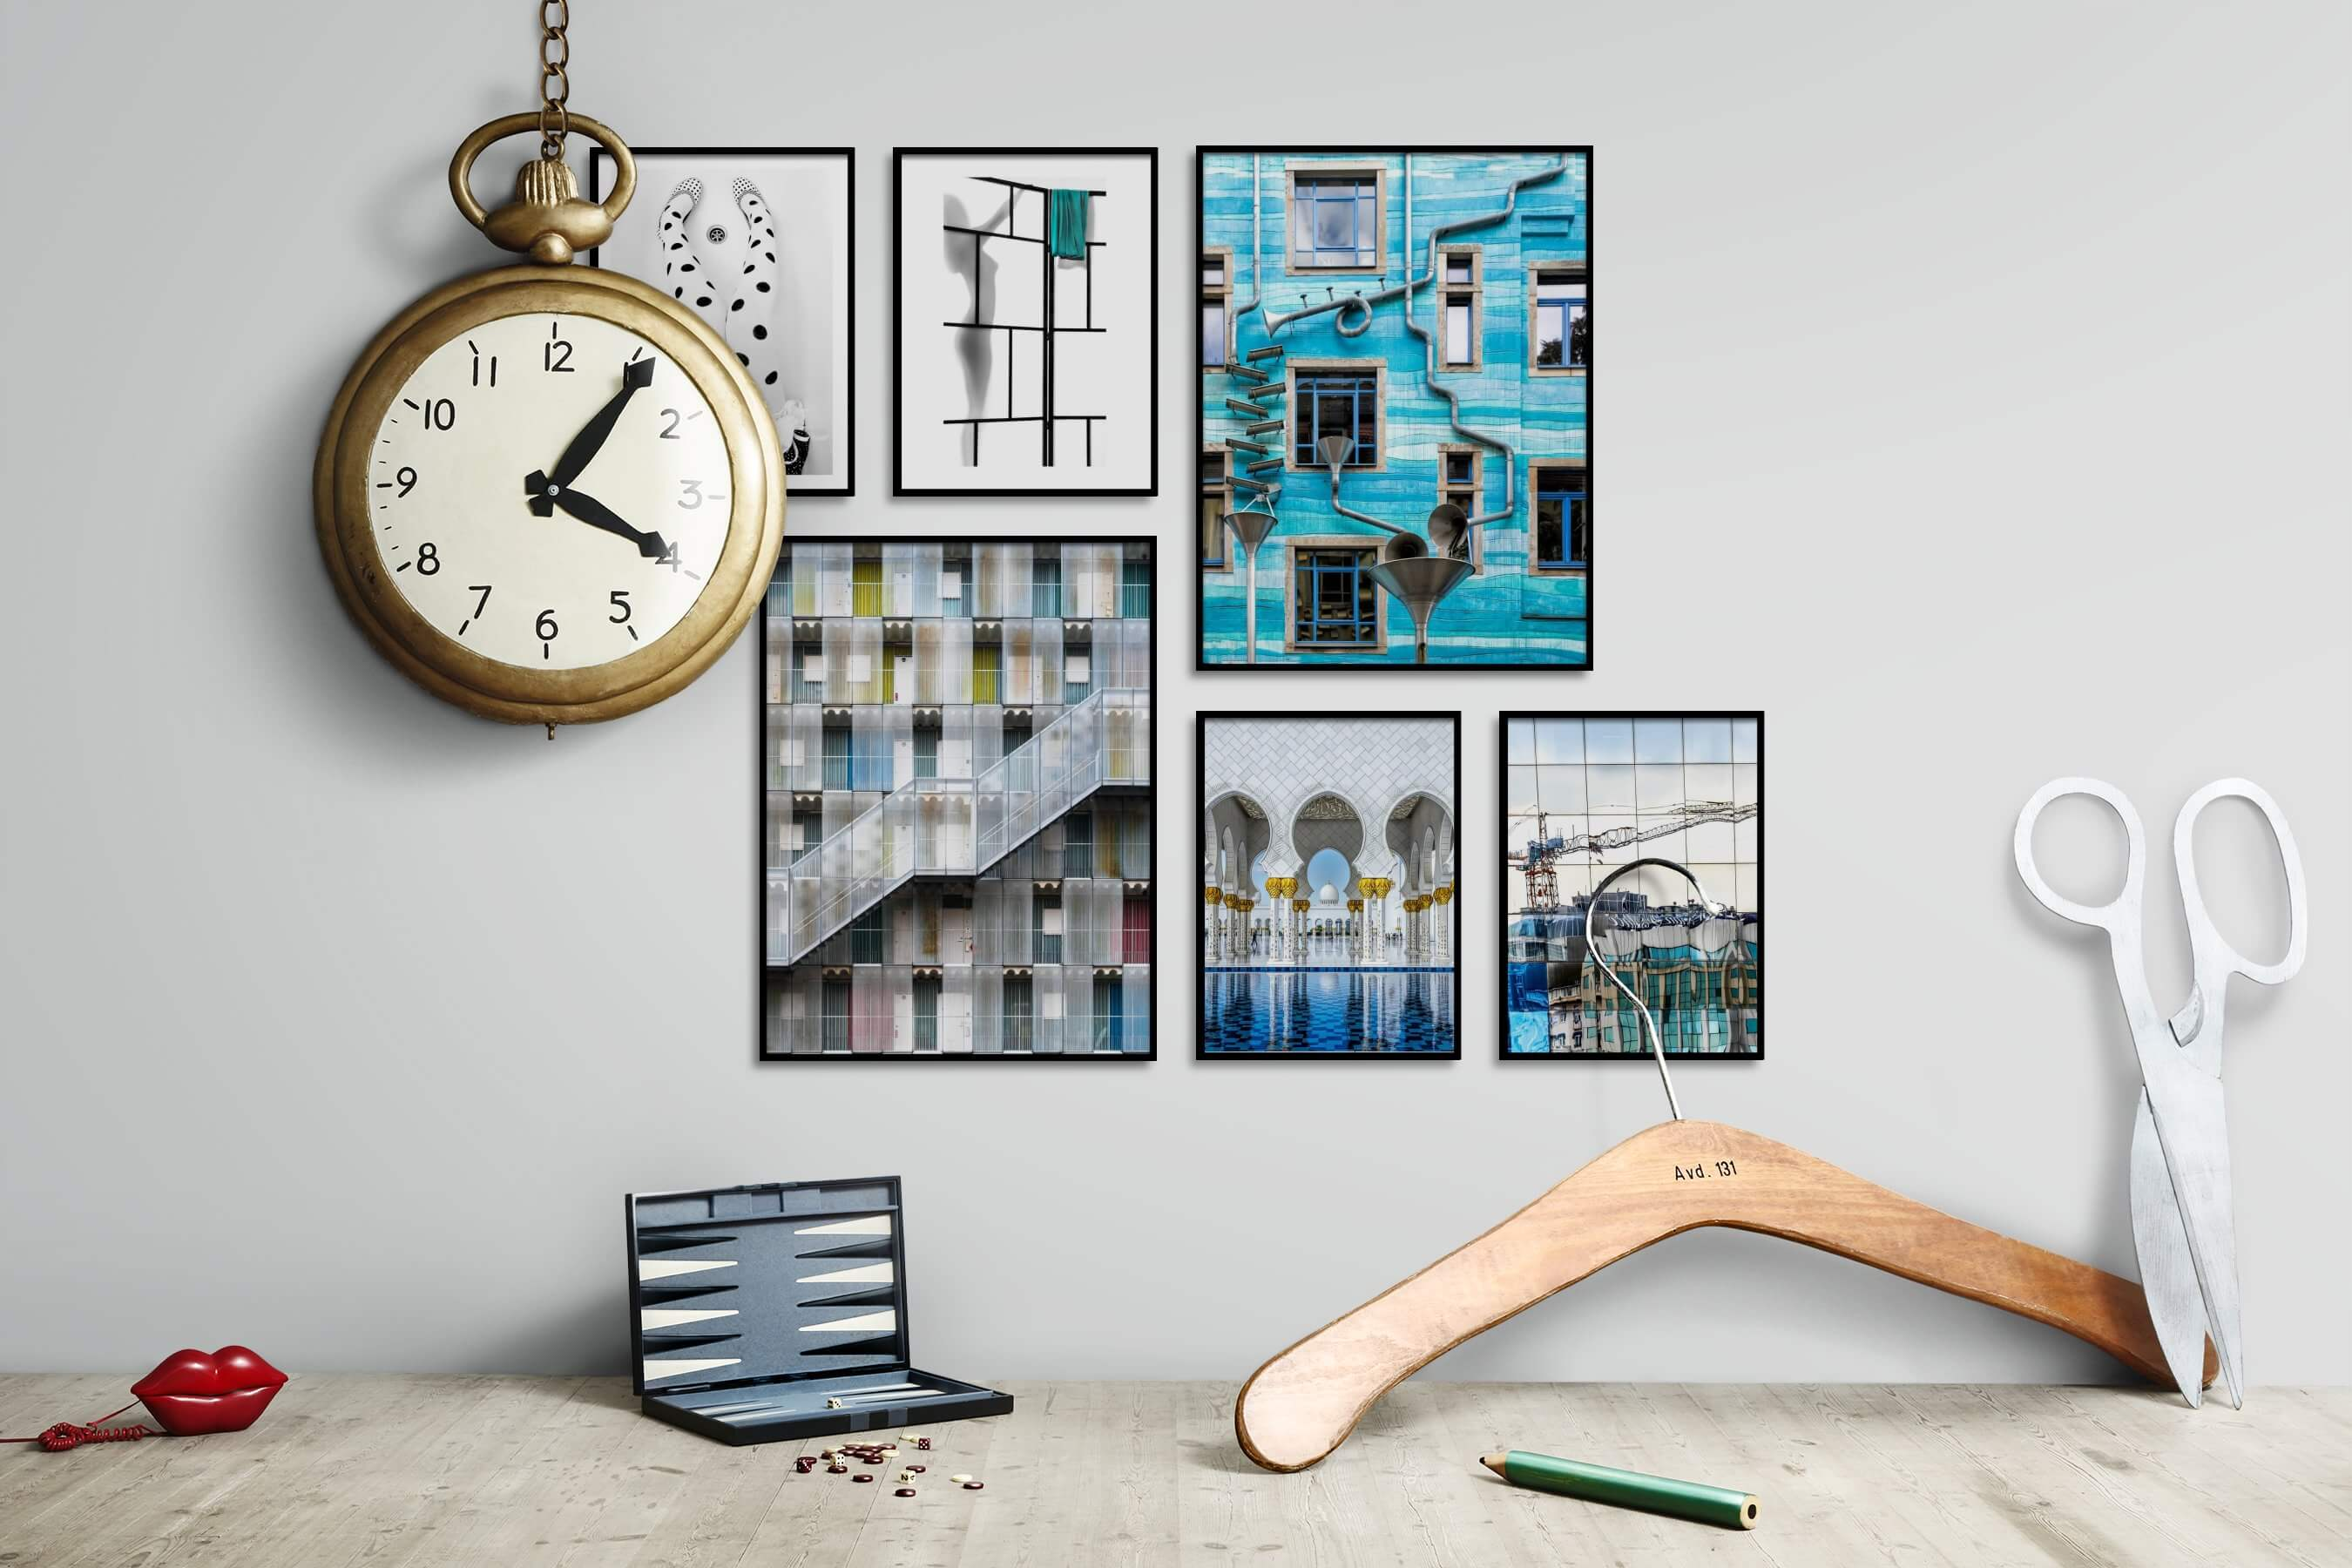 Gallery wall idea with six framed pictures arranged on a wall depicting Fashion & Beauty, Black & White, For the Moderate, For the Minimalist, For the Maximalist, and City Life